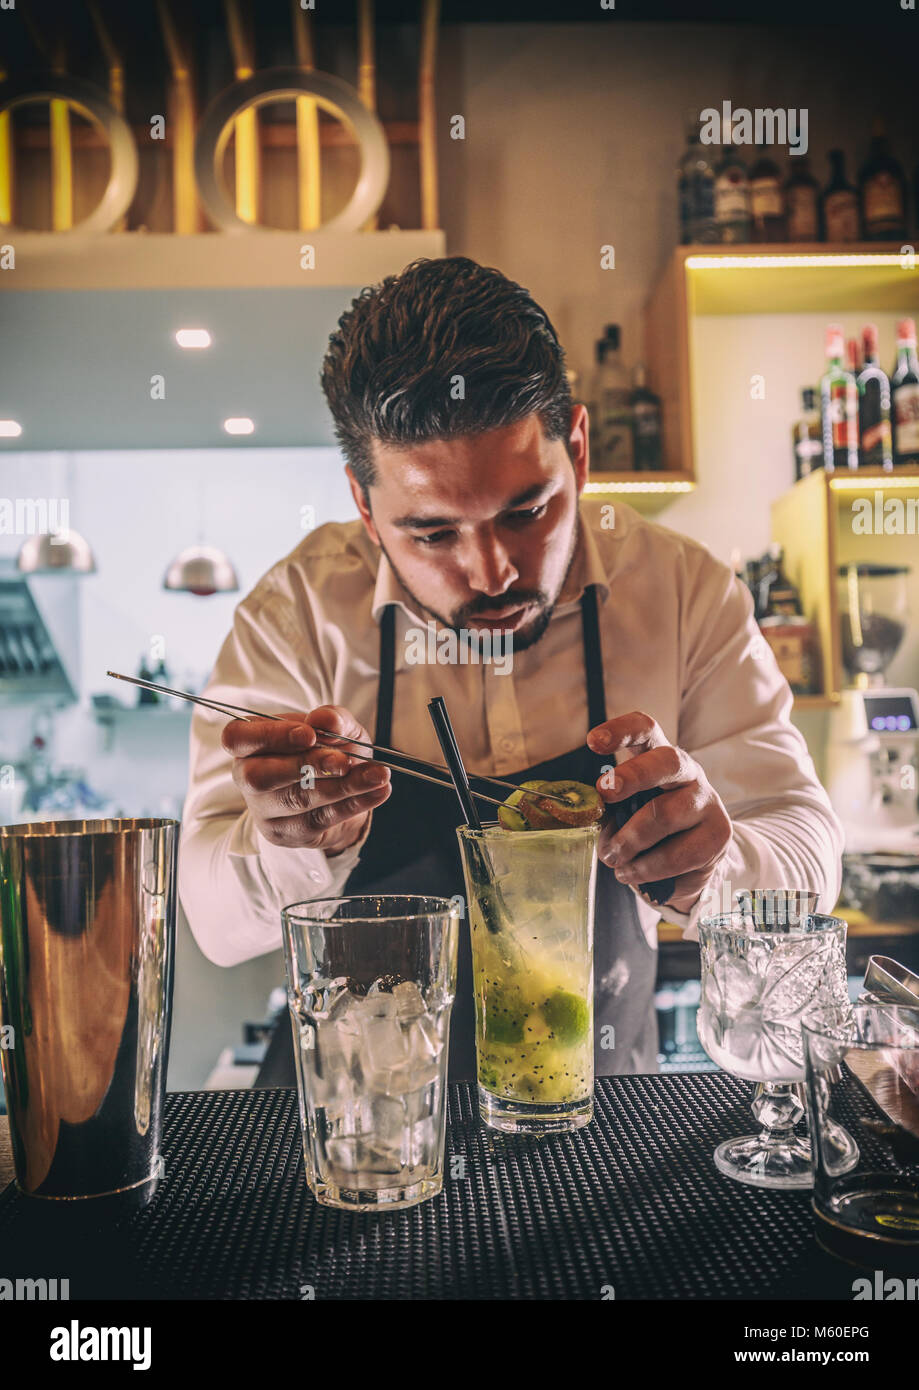 Bartender decorating cocktail with kiwi - Stock Image